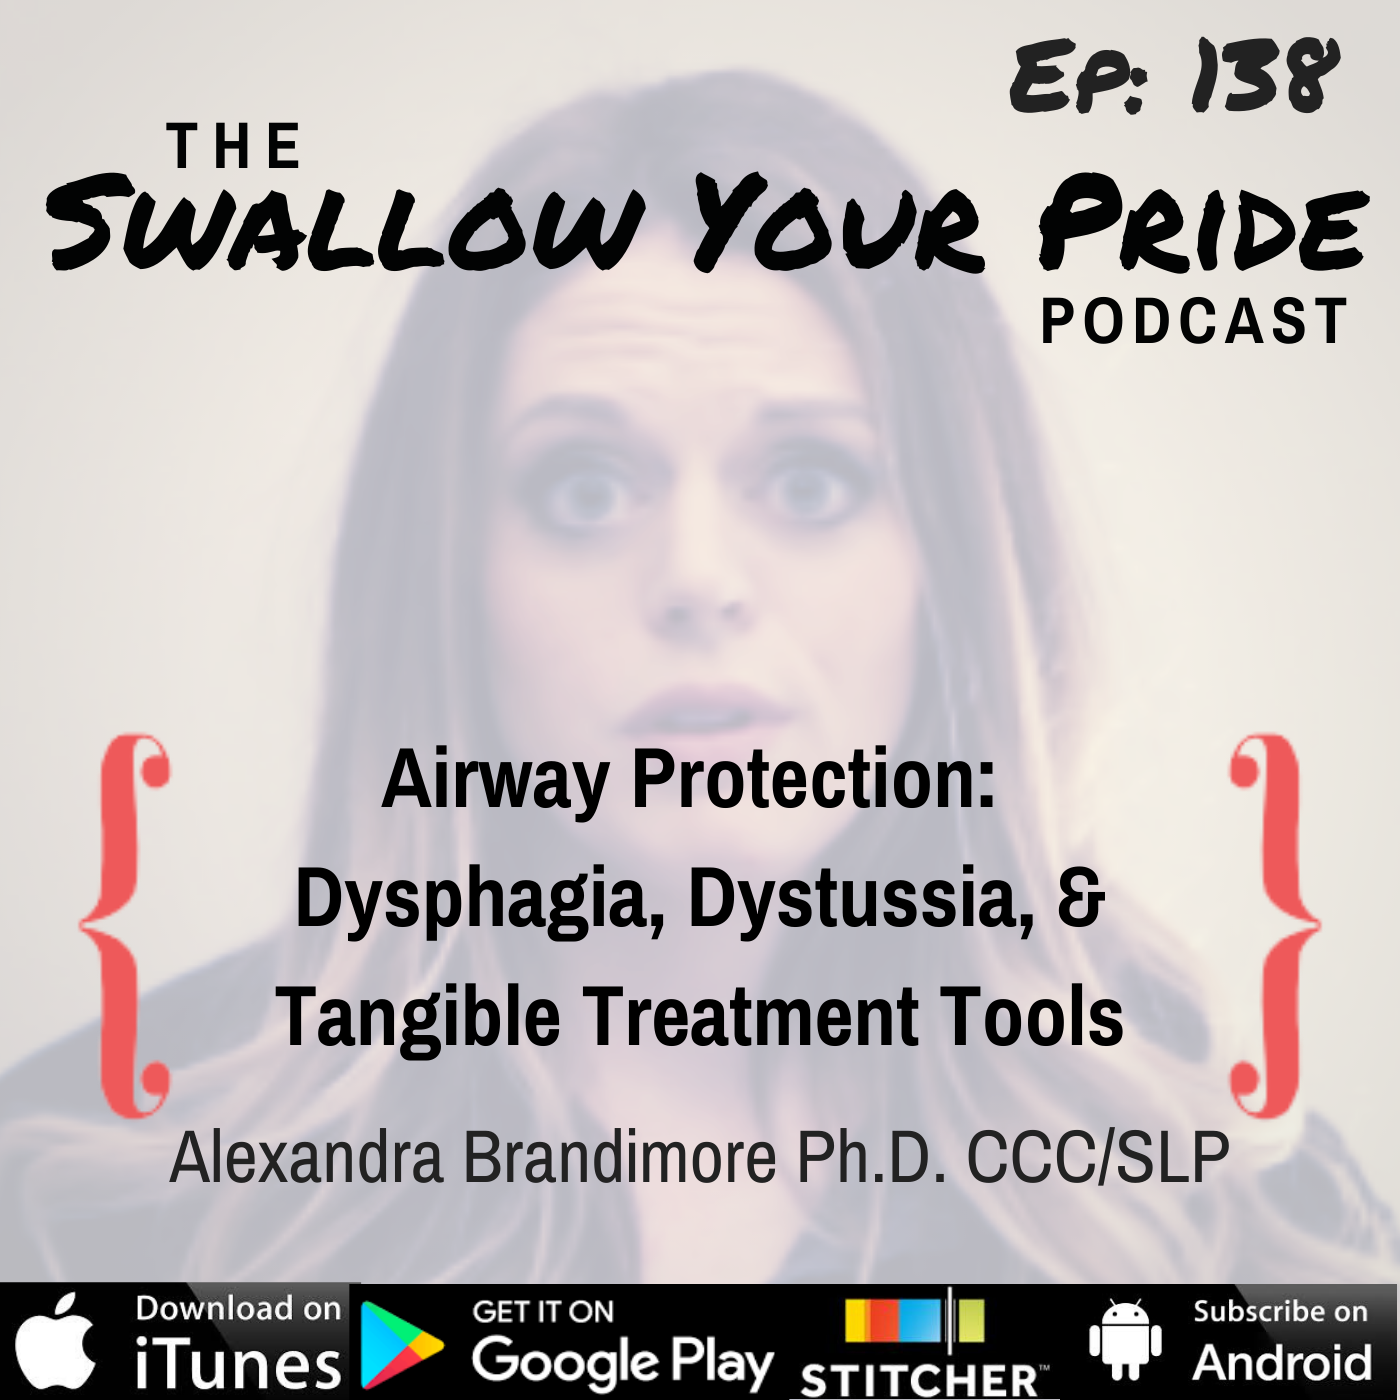 138 – Alexandra Brandimore Ph.D. CCC/SLP – Airway Protection: Dysphagia, Dystusssia & Tangible Treatment Tools